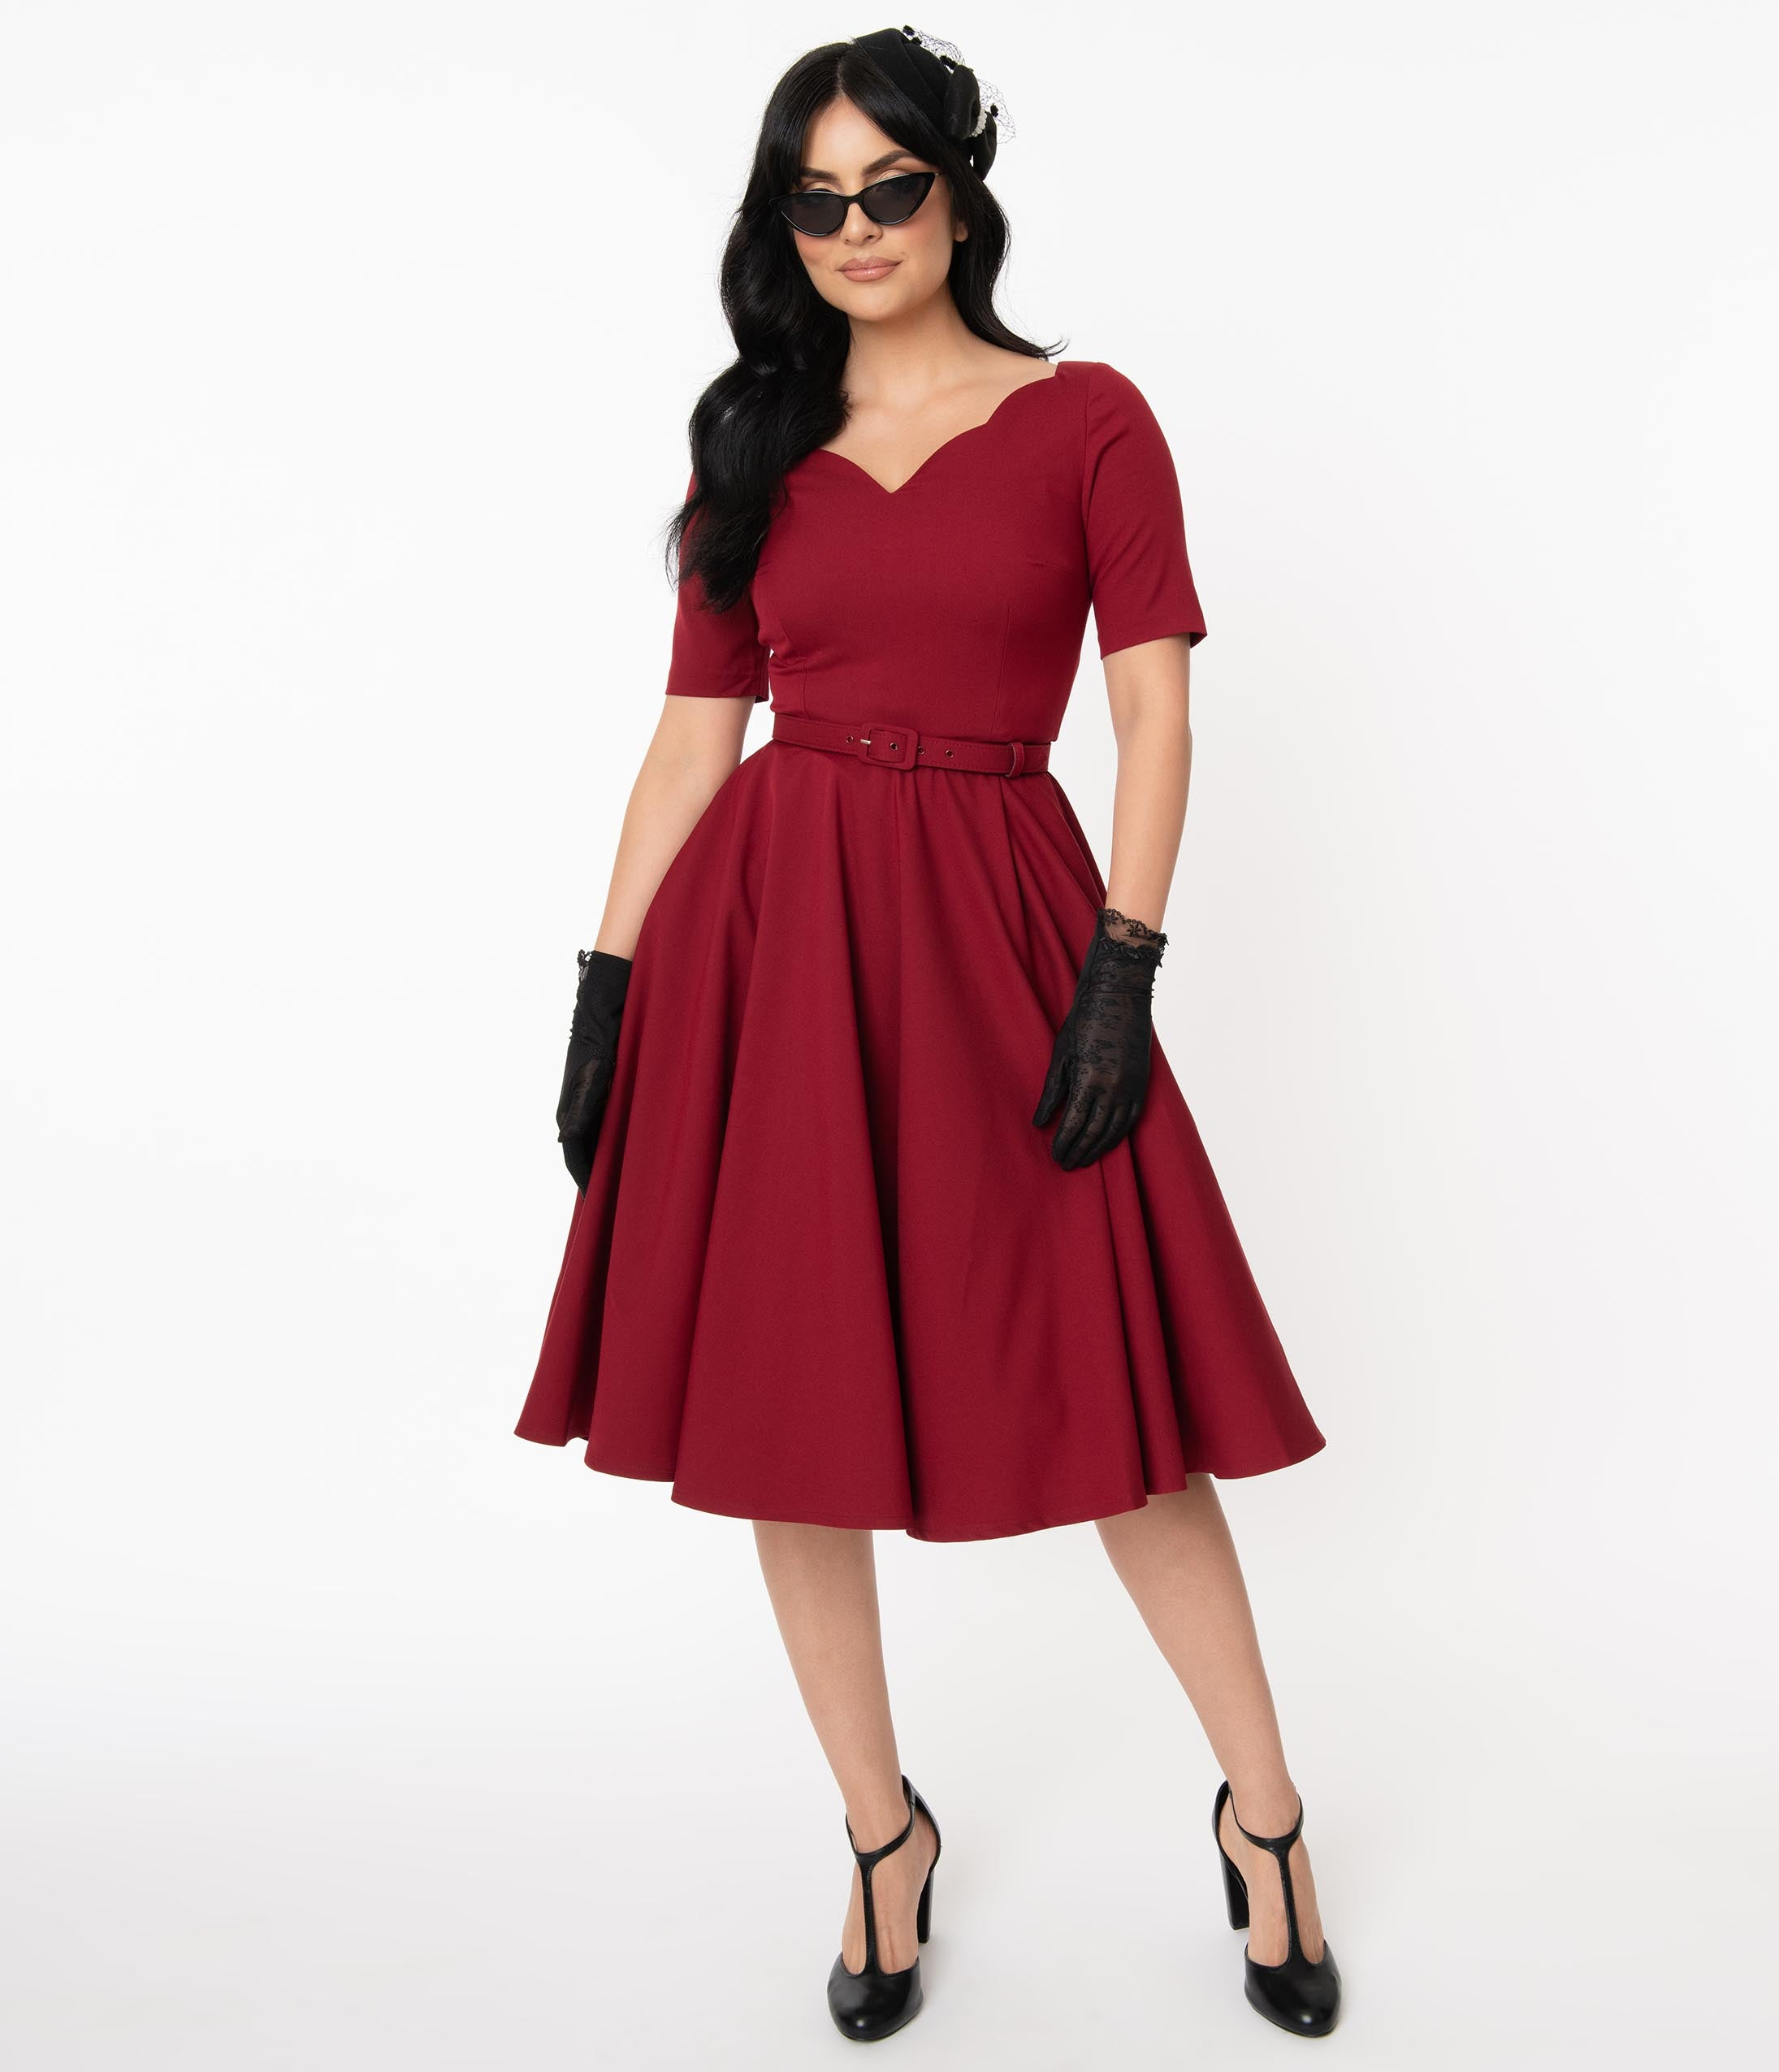 Pin Up Girl Costumes | Pin Up Costumes Vintage Diva 1950S Bordeaux Red Beth Swing Dress $145.00 AT vintagedancer.com